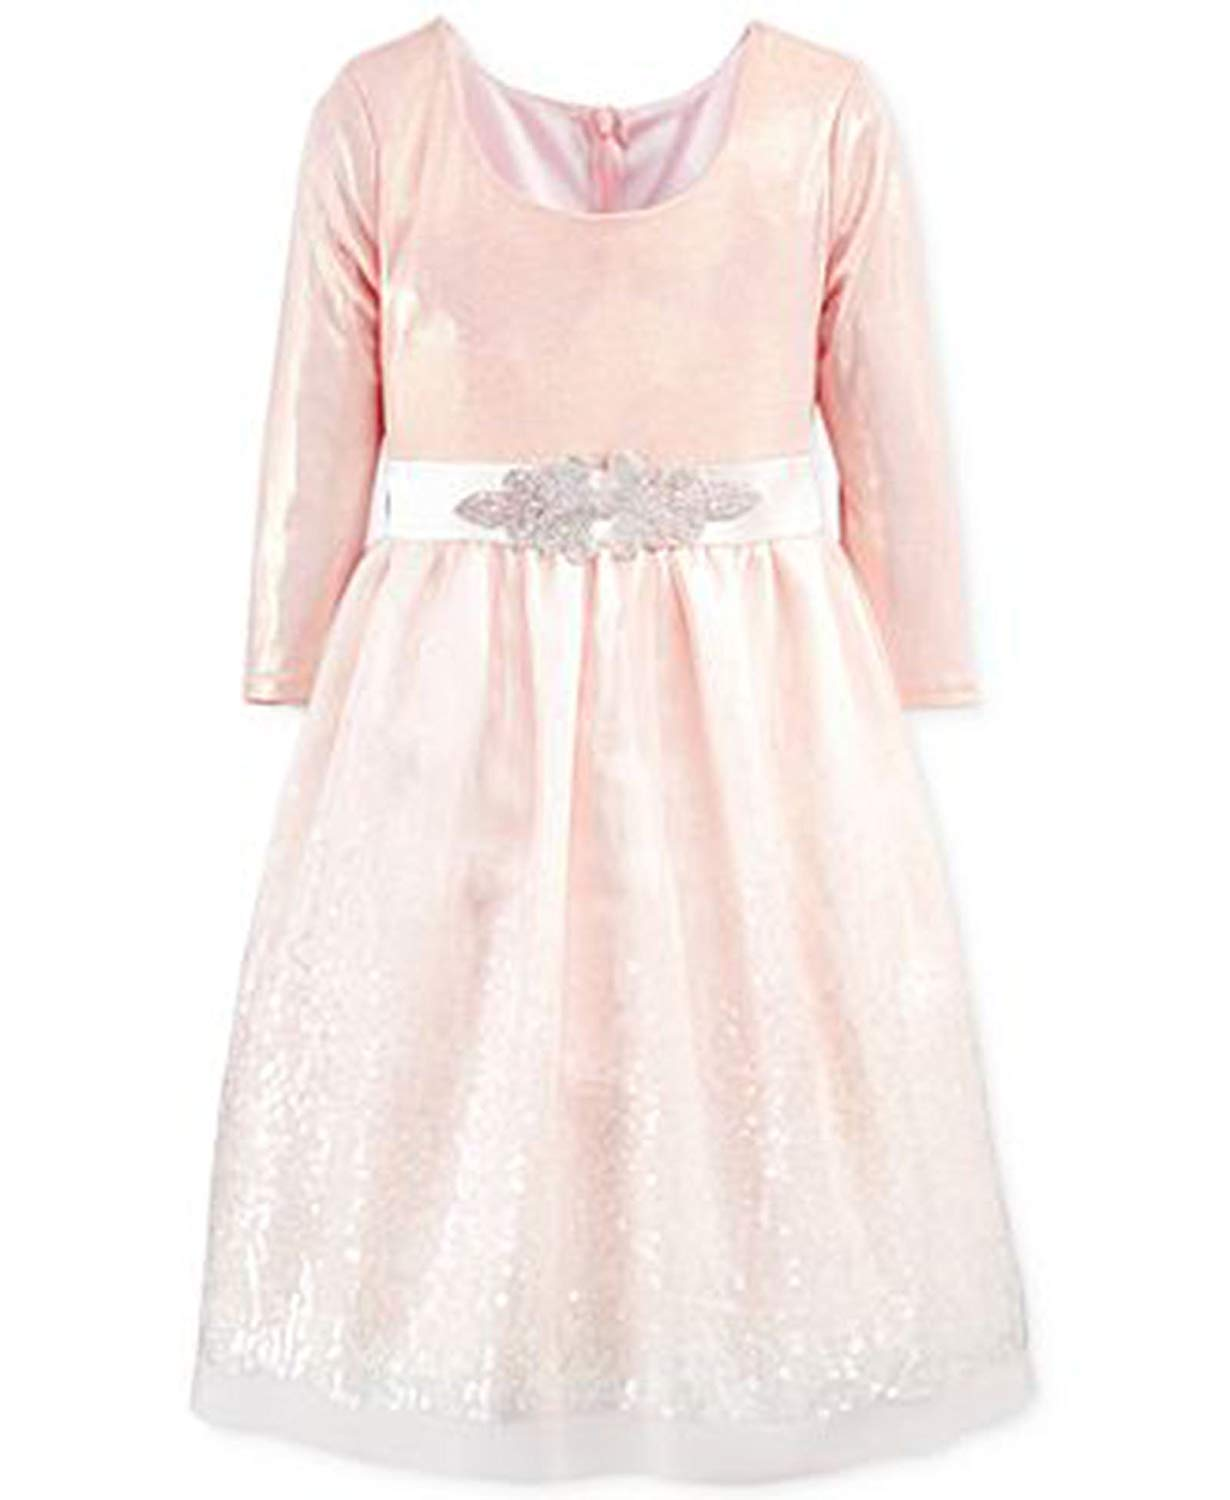 99e37b316bc Buy Bonnie Jean Little Girls Sequin-Skirt Dress 2 2T Pink in Cheap ...